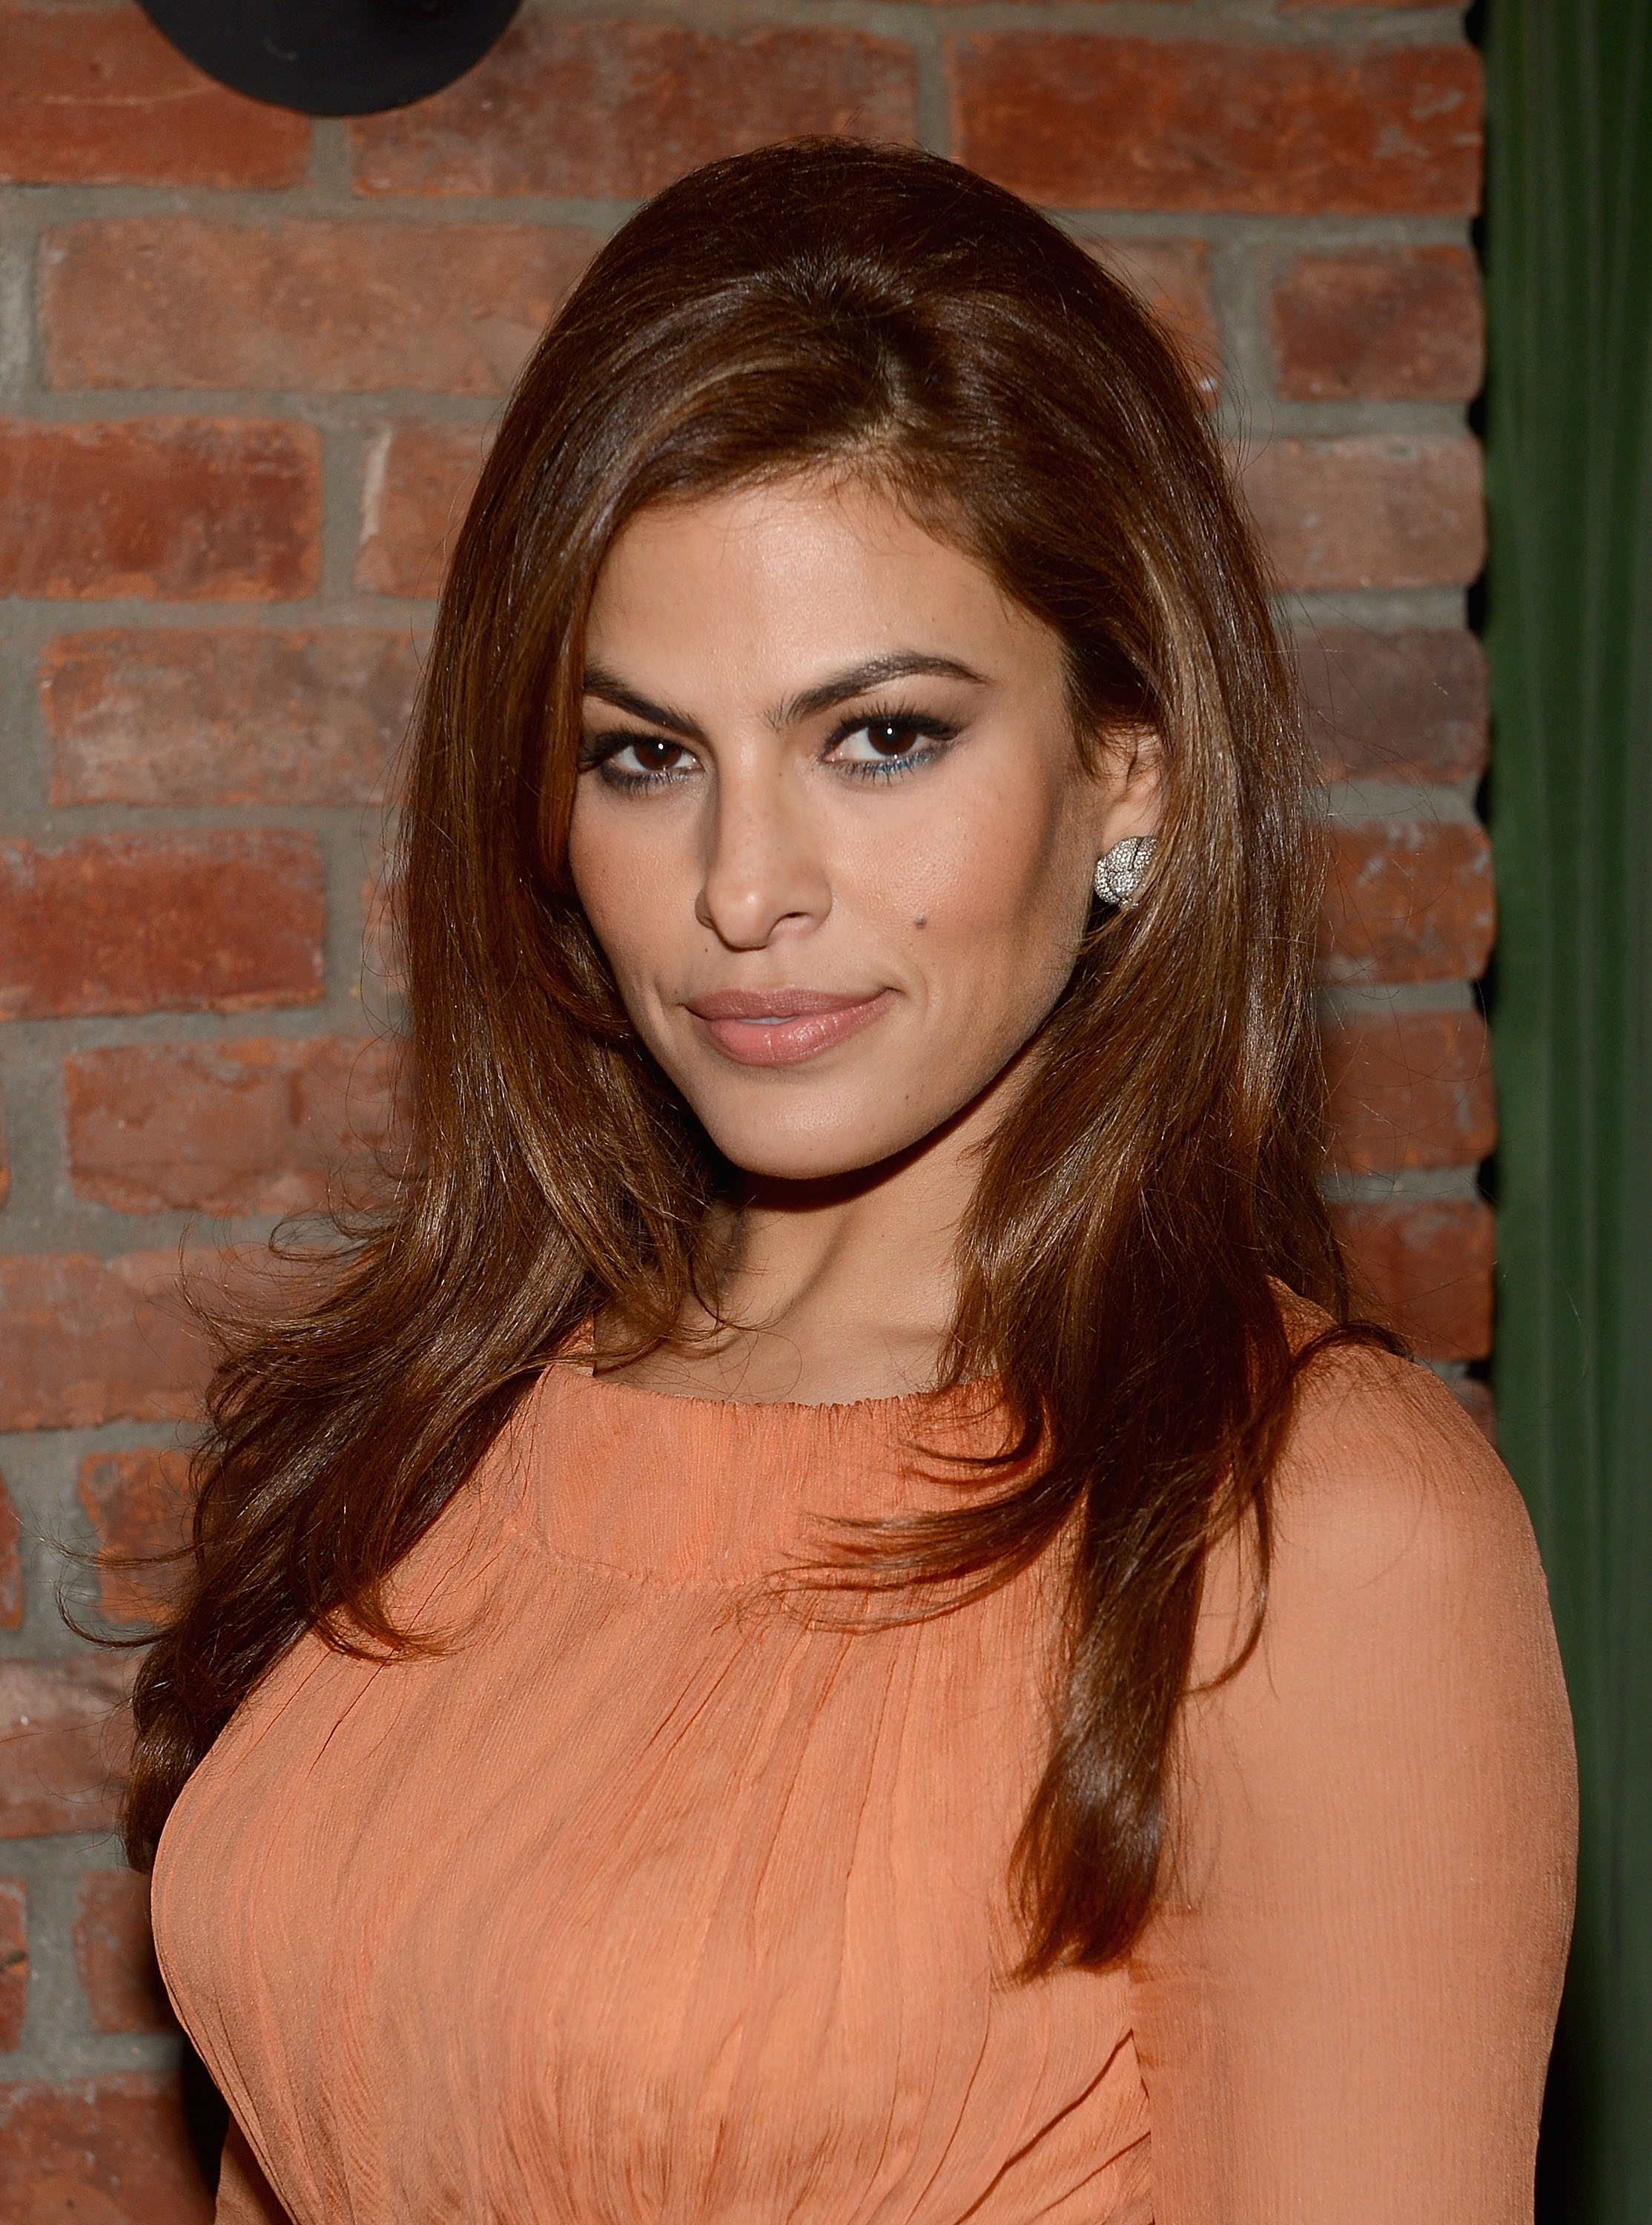 """Eva Mendes attends the after party for """"The Place Beyond The Pines"""" New York Premiere at The Bowery Hotel on March 28, 2013 in New York City."""